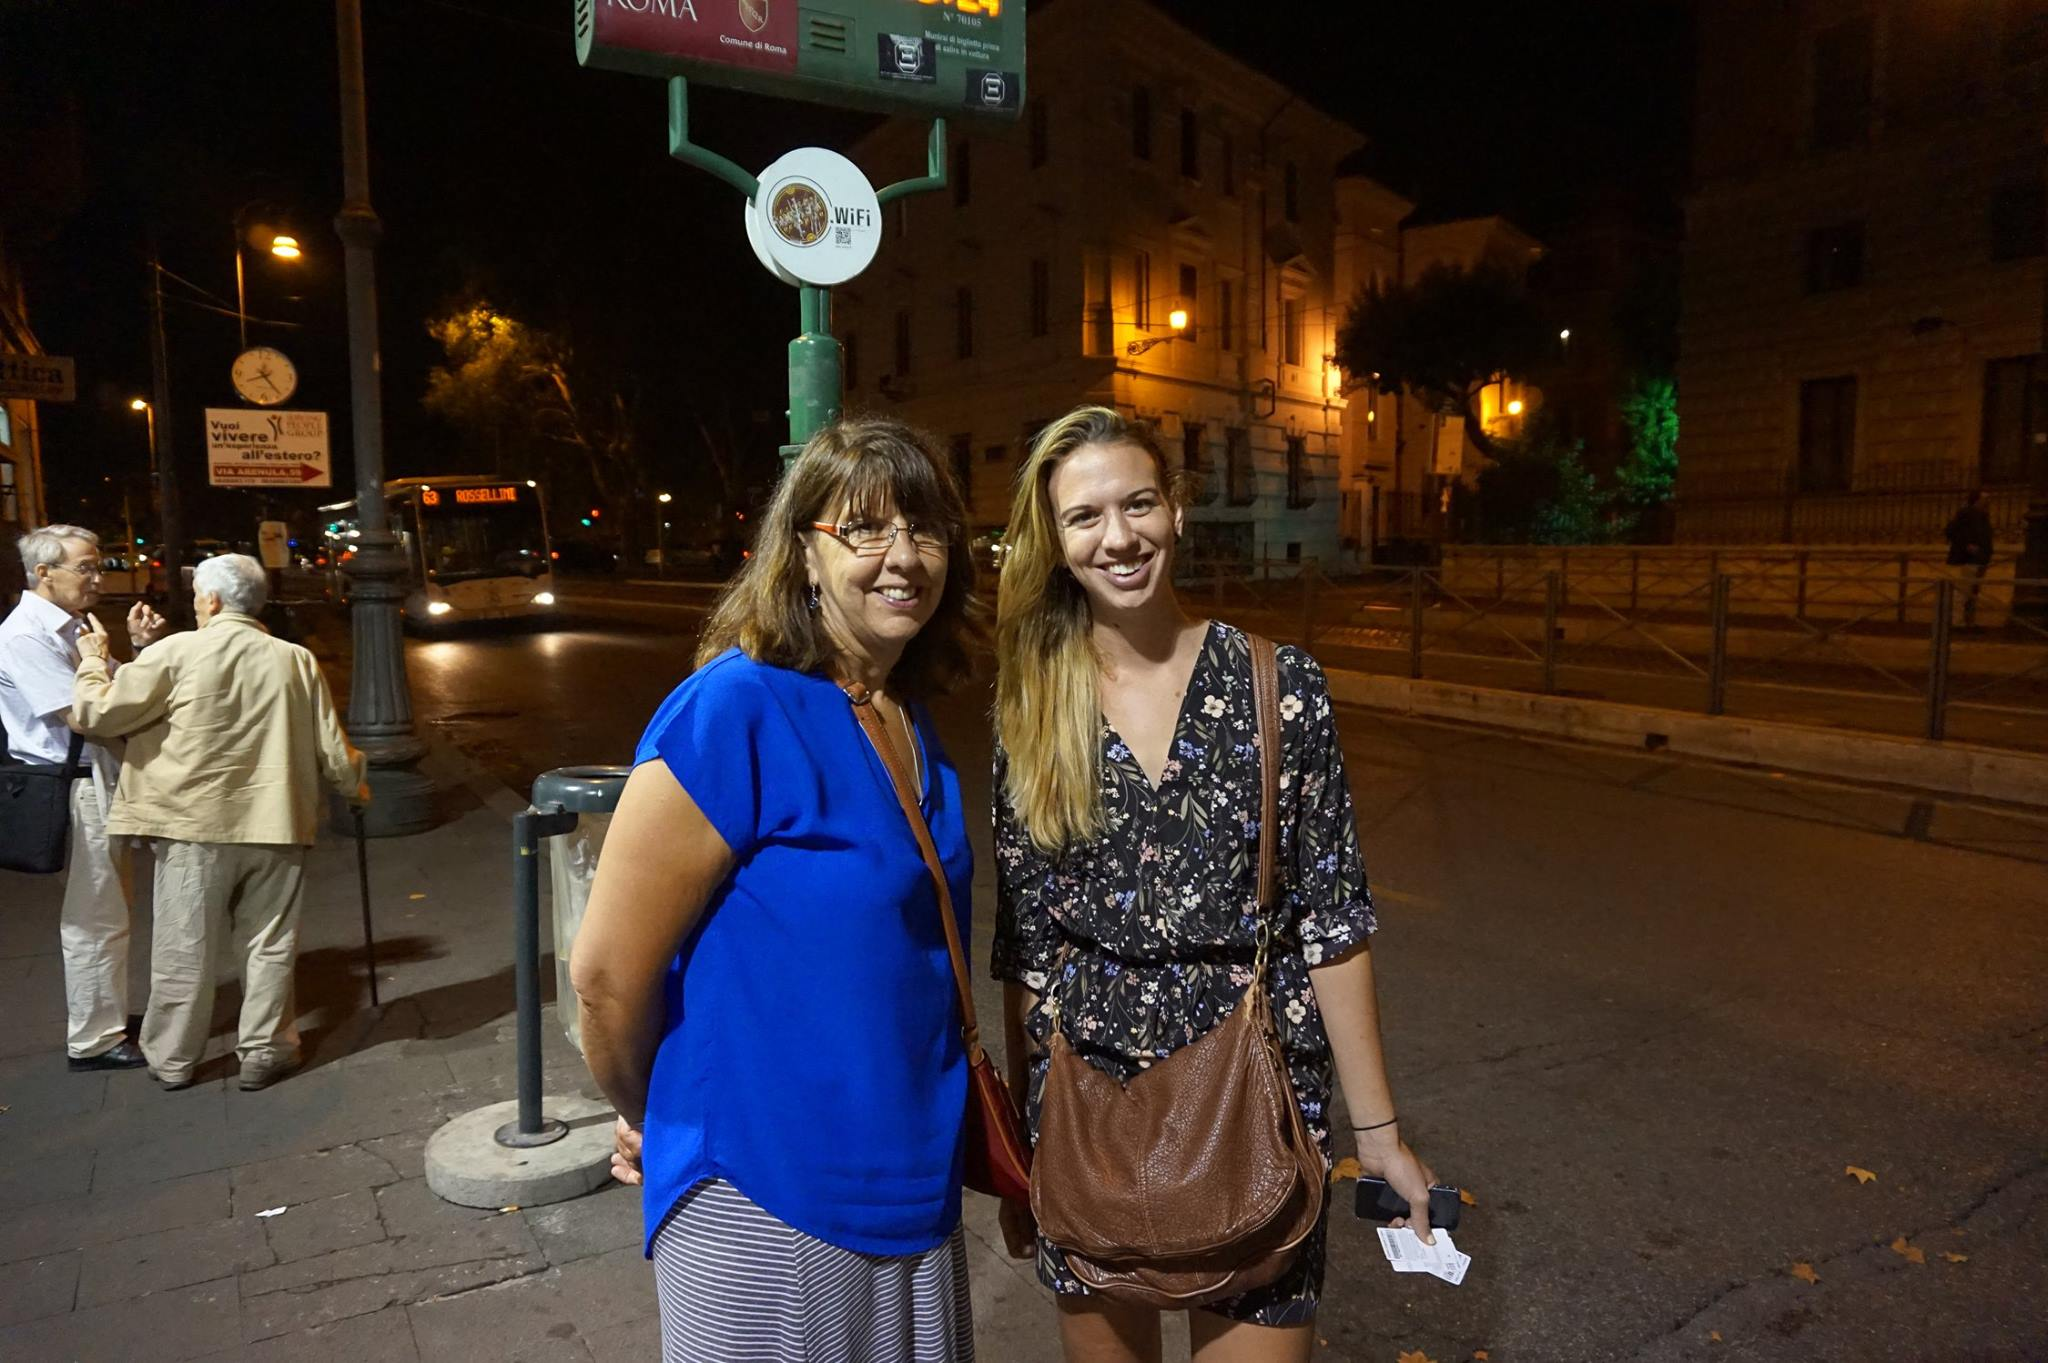 Waiting for the bus on our last evening in Rome. Though my mom has the best internal map around, I was in charge of navigating the transit system.